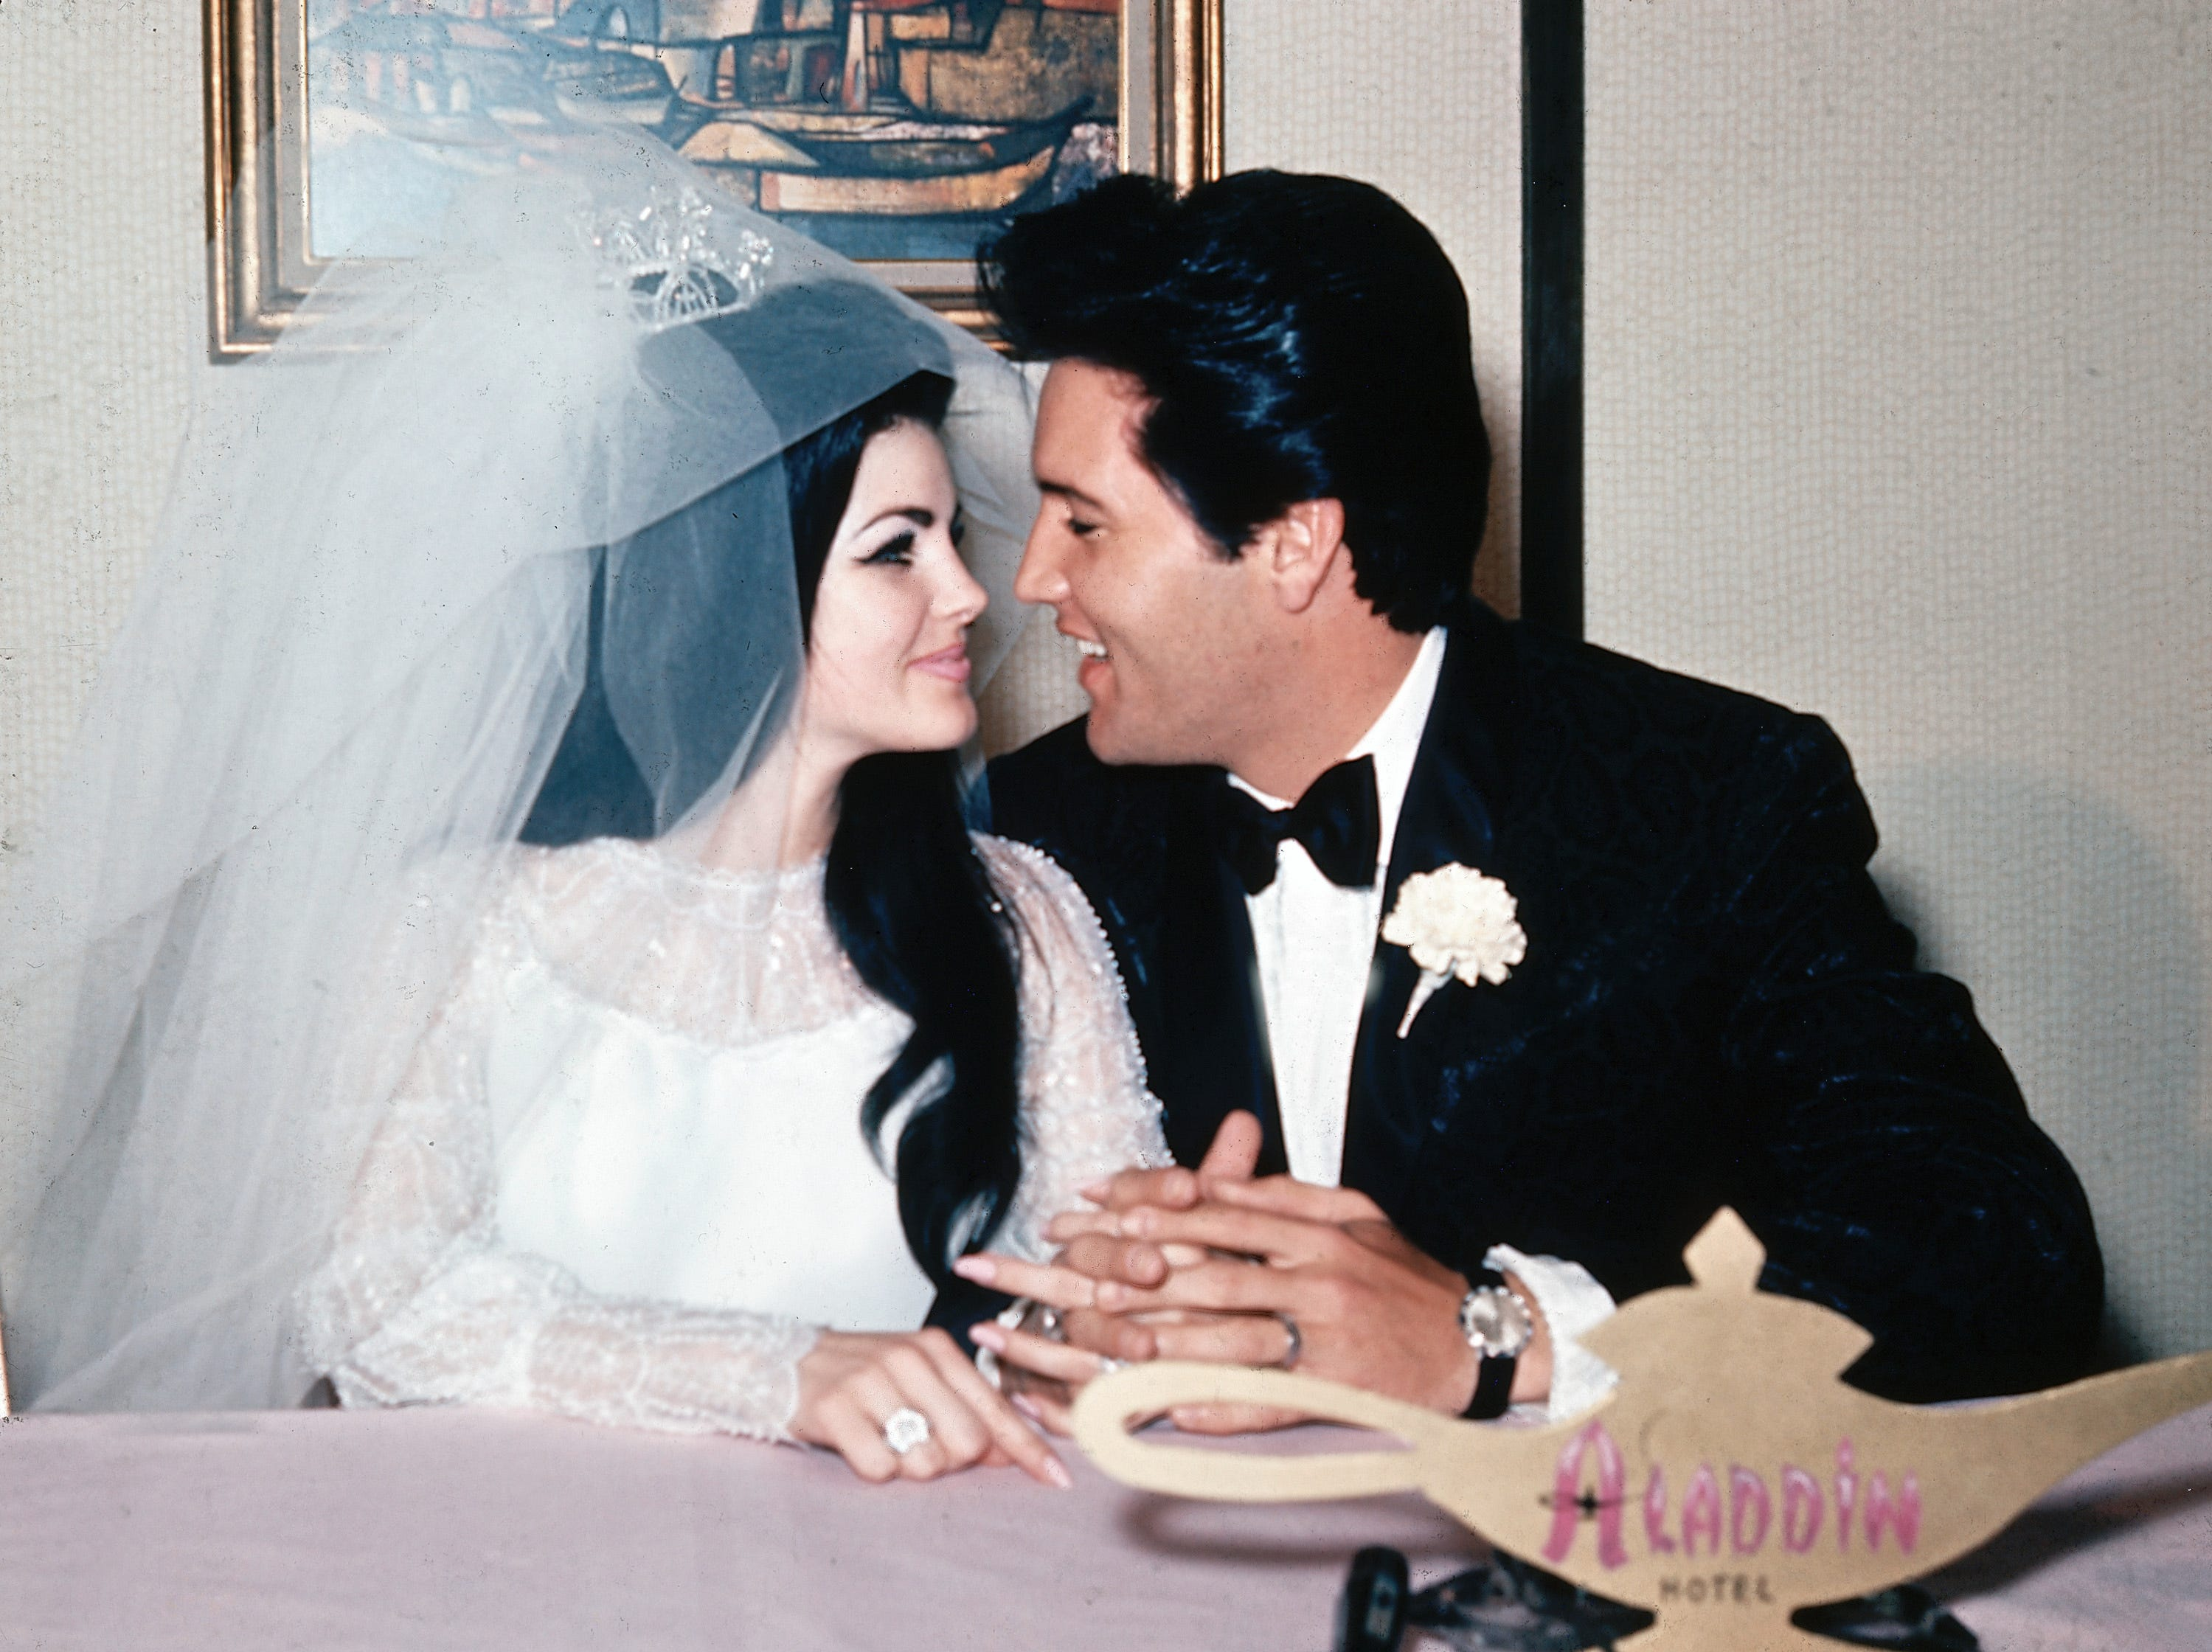 "FILE  - In this May 1, 1967, file photo, singer Elvis Presley and his bride, the former Priscilla Beaulieu, appear at the Aladdin Hotel in Las Vegas, after their wedding. Presley, 32, and Beaulieu, 21, both from Memphis, Tenn., met while he was stationed in Germany with the U.S. Army.  The new Elvis Presley's Graceland Wedding Chapel at the Westgate Resort & Hotel in Las Vegas is scheduled to open on Thursday, April 23, 2015, as part of the new ""Graceland Presents ELVIS: The Exhibition - The Show - The Experience"" in Las Vegas. (AP Photo/File) ORG XMIT: CAET295 [Via MerlinFTP Drop]"